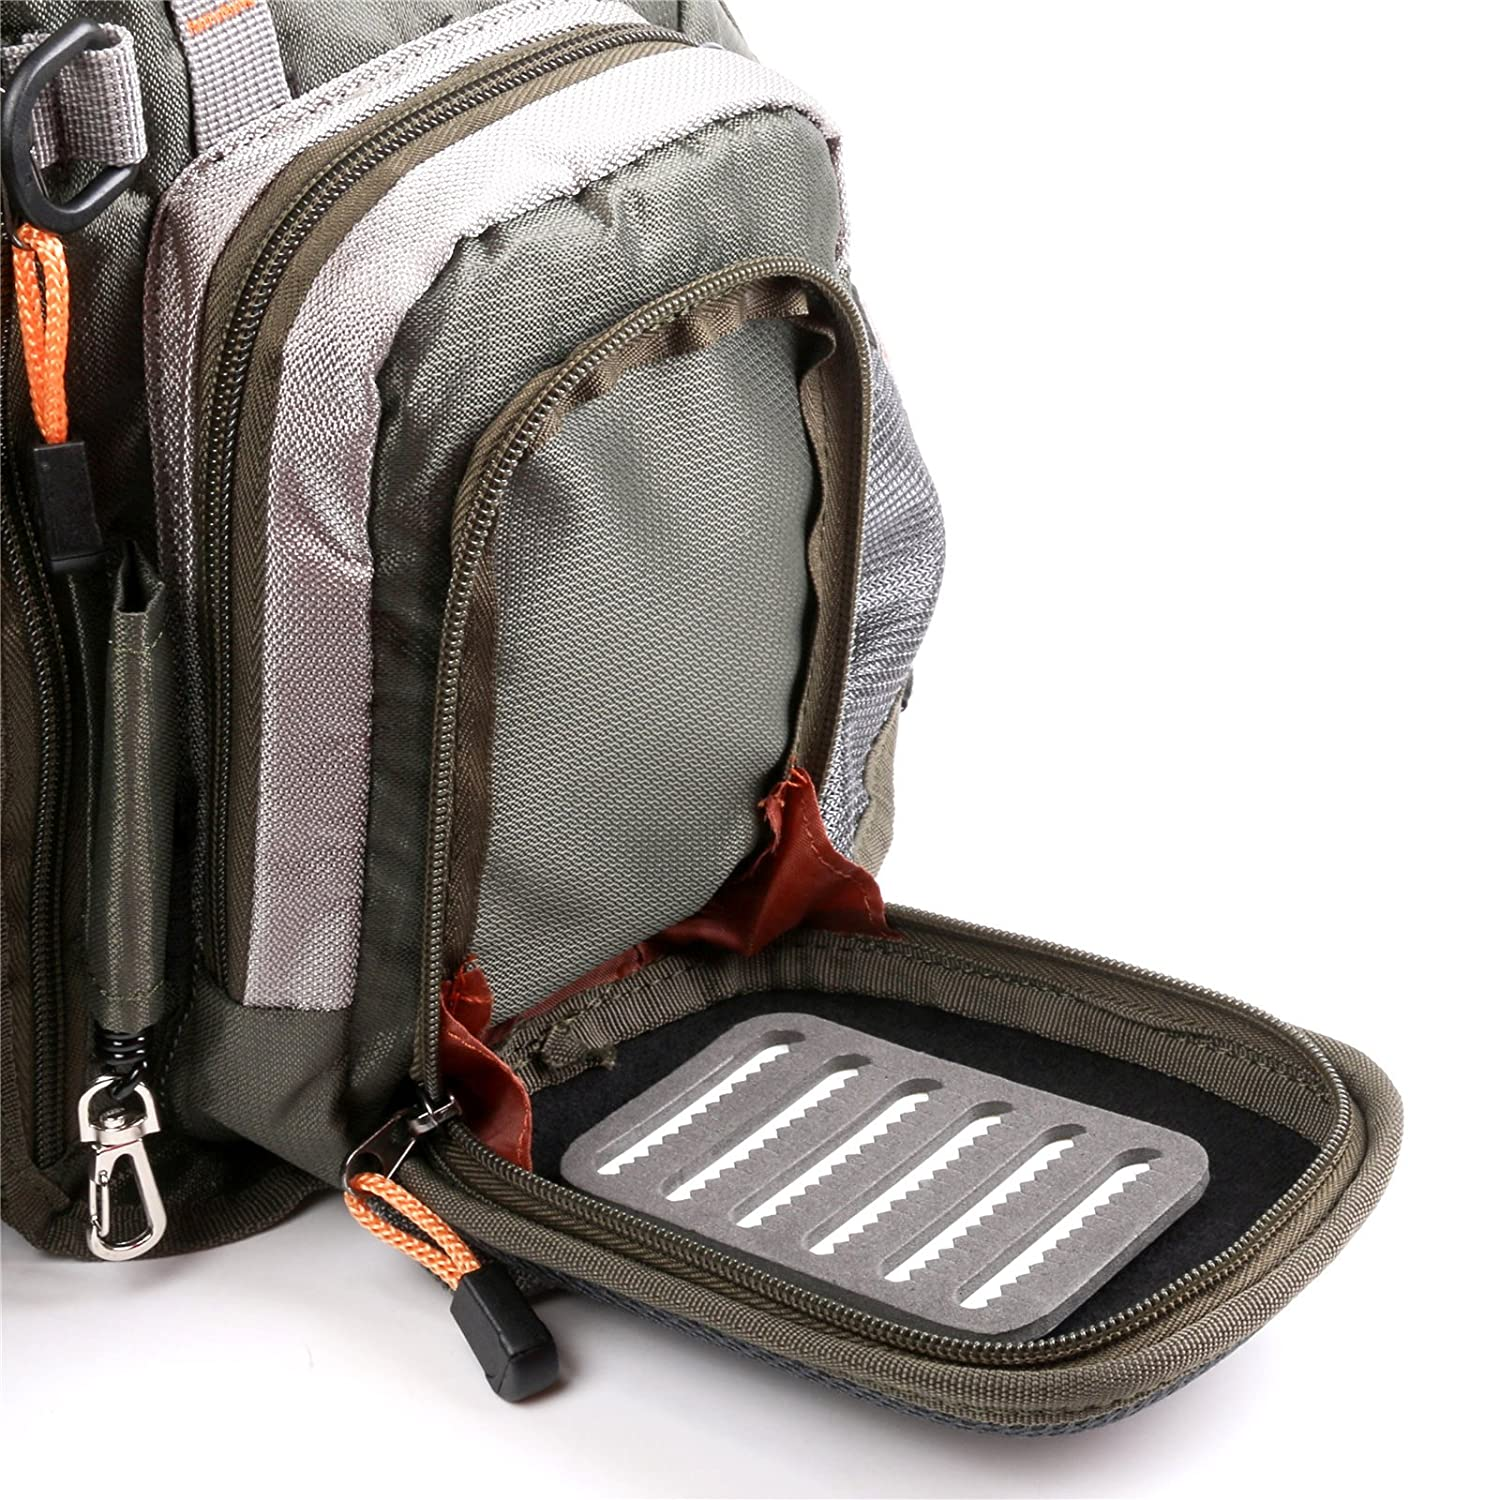 Maxcatch fly fishing backpack adjustable size mesh fishing for Fly fishing backpack